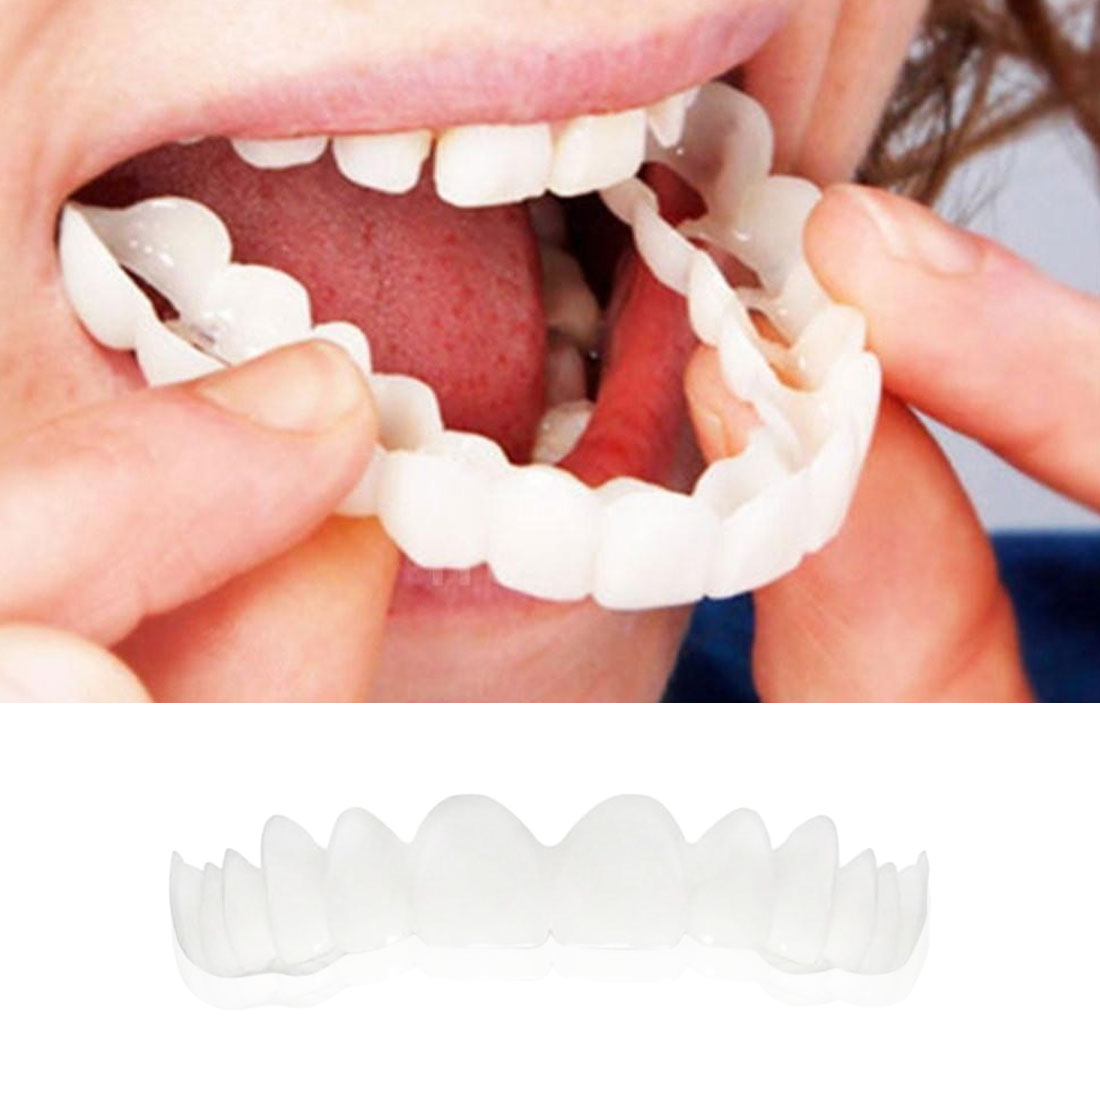 Image 3 - 5pcs Fit Dentes White Cover Denture Teeth Top Cosmetic bleaching Yellow Teeth Whitening Temporary Smile Comfort-in Teeth Whitening from Beauty & Health